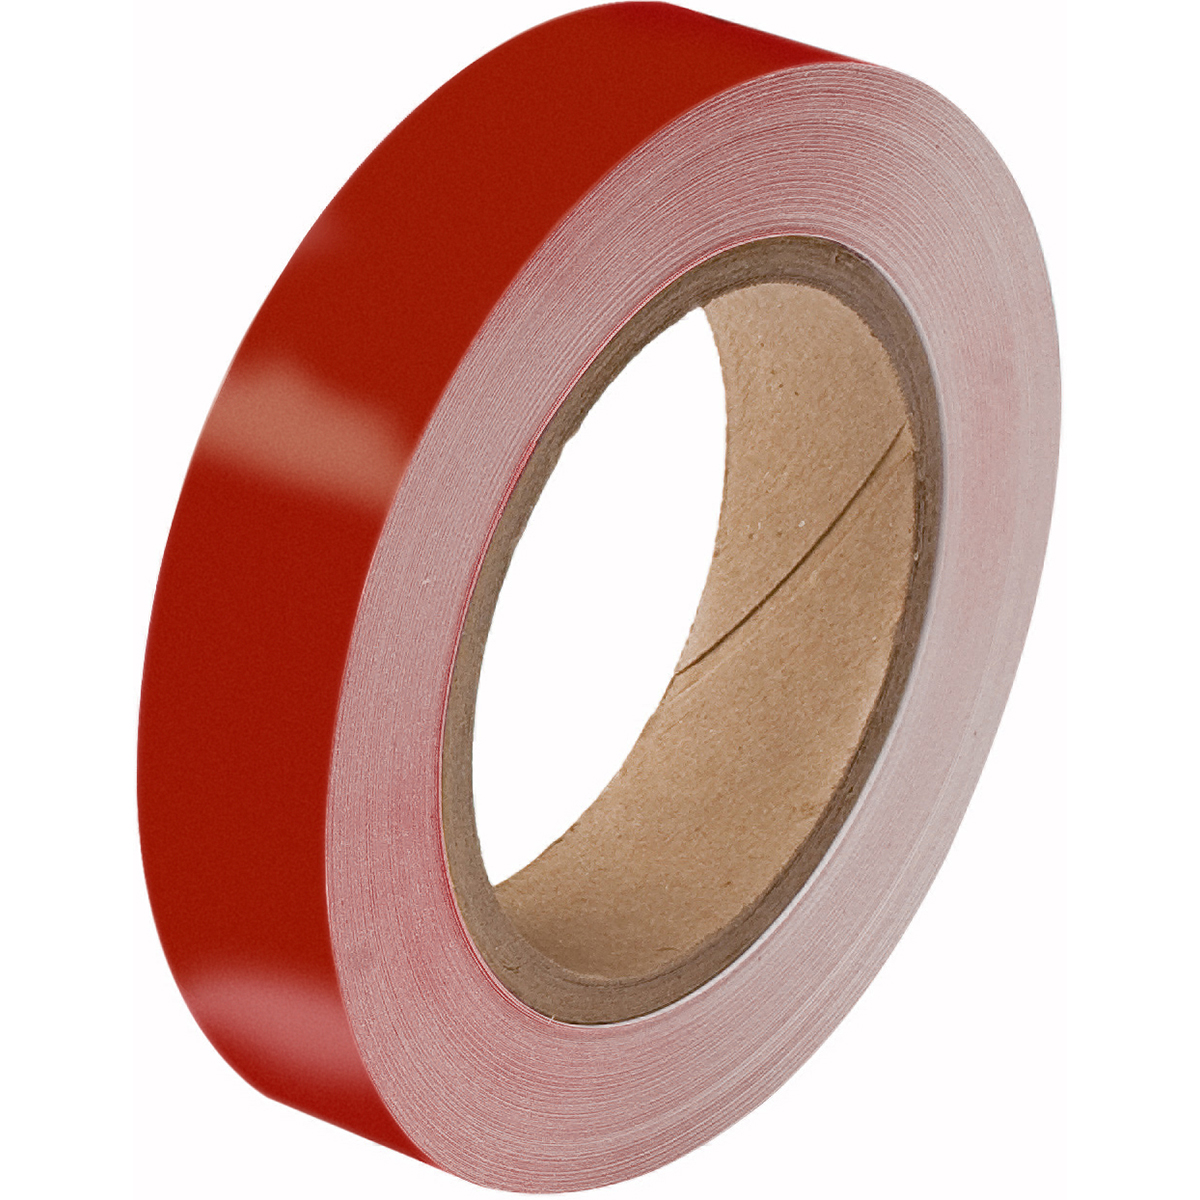 Pipe Banding Tape - Red